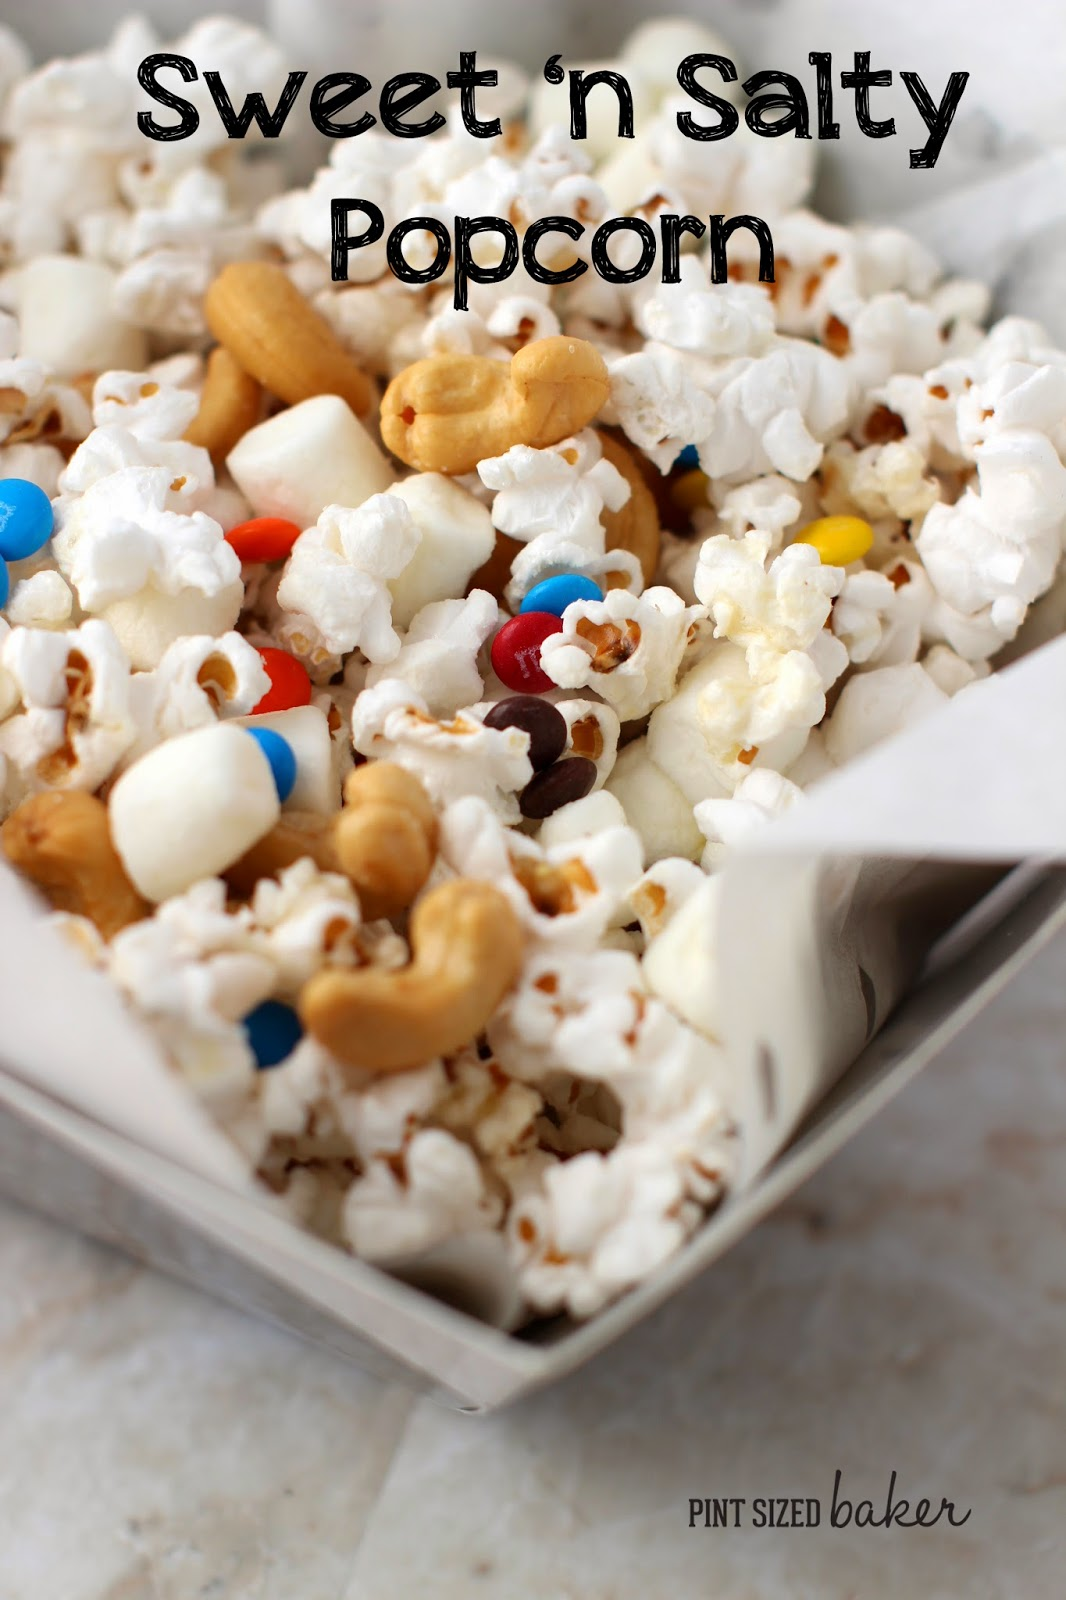 We all love the combo of a little bit sweet and a little bit salty! Enjoy this Sweet N' Salty Party Popcorn during your next family movie night!